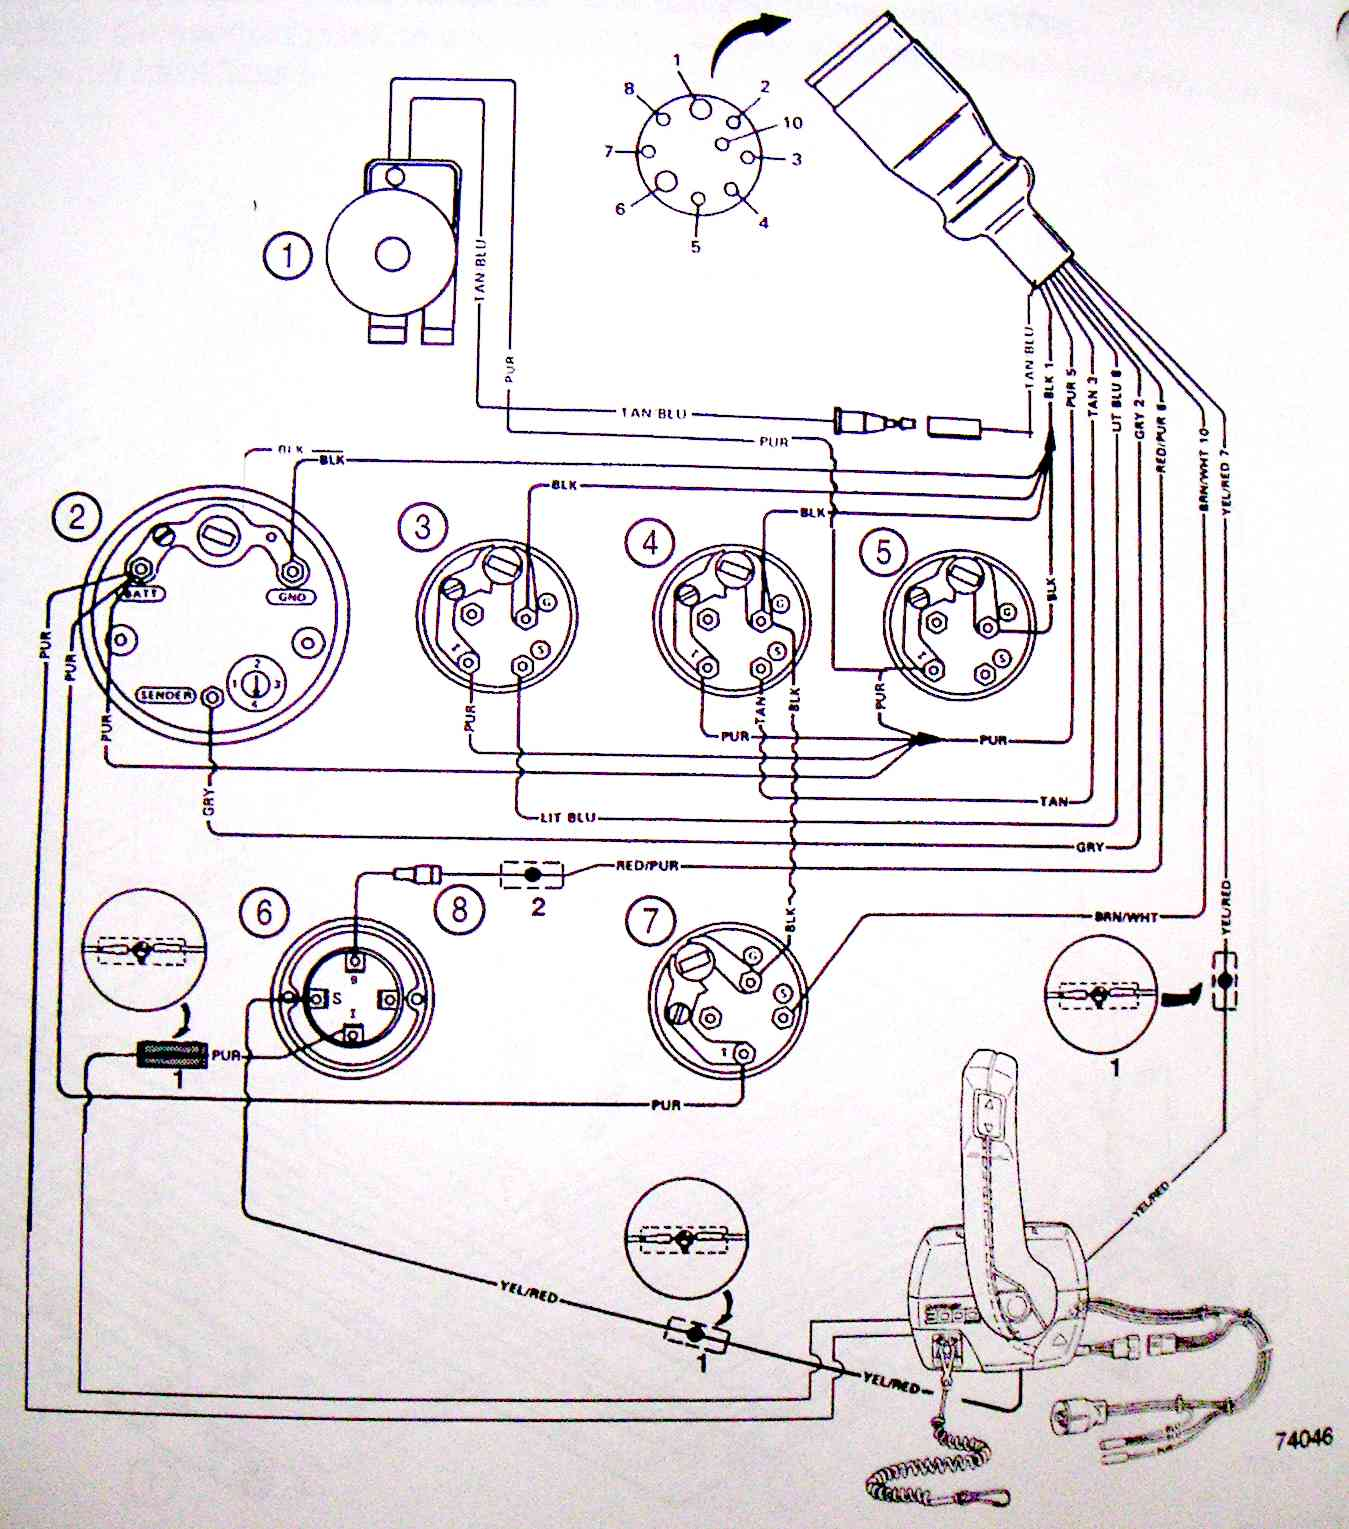 BoatHarness74046 jet boat wiring diagram boat wiring layout \u2022 free wiring diagrams motorola tachometer wiring diagram at pacquiaovsvargaslive.co